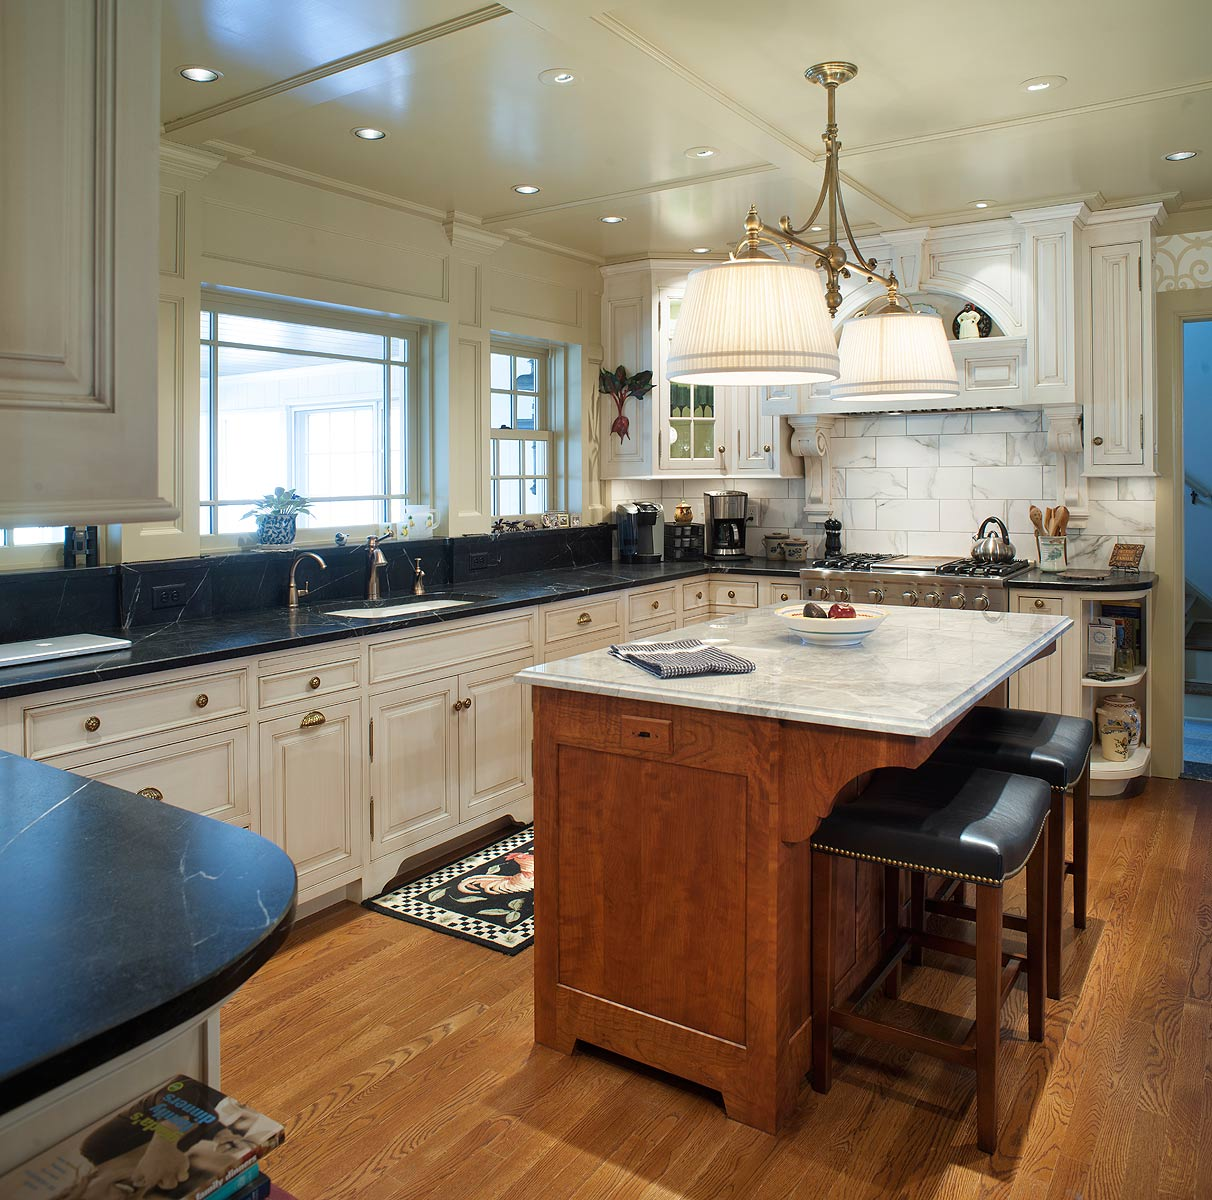 Mullet Cabinet — Nantucket Glazed Kitchen with Curly Cherry ...